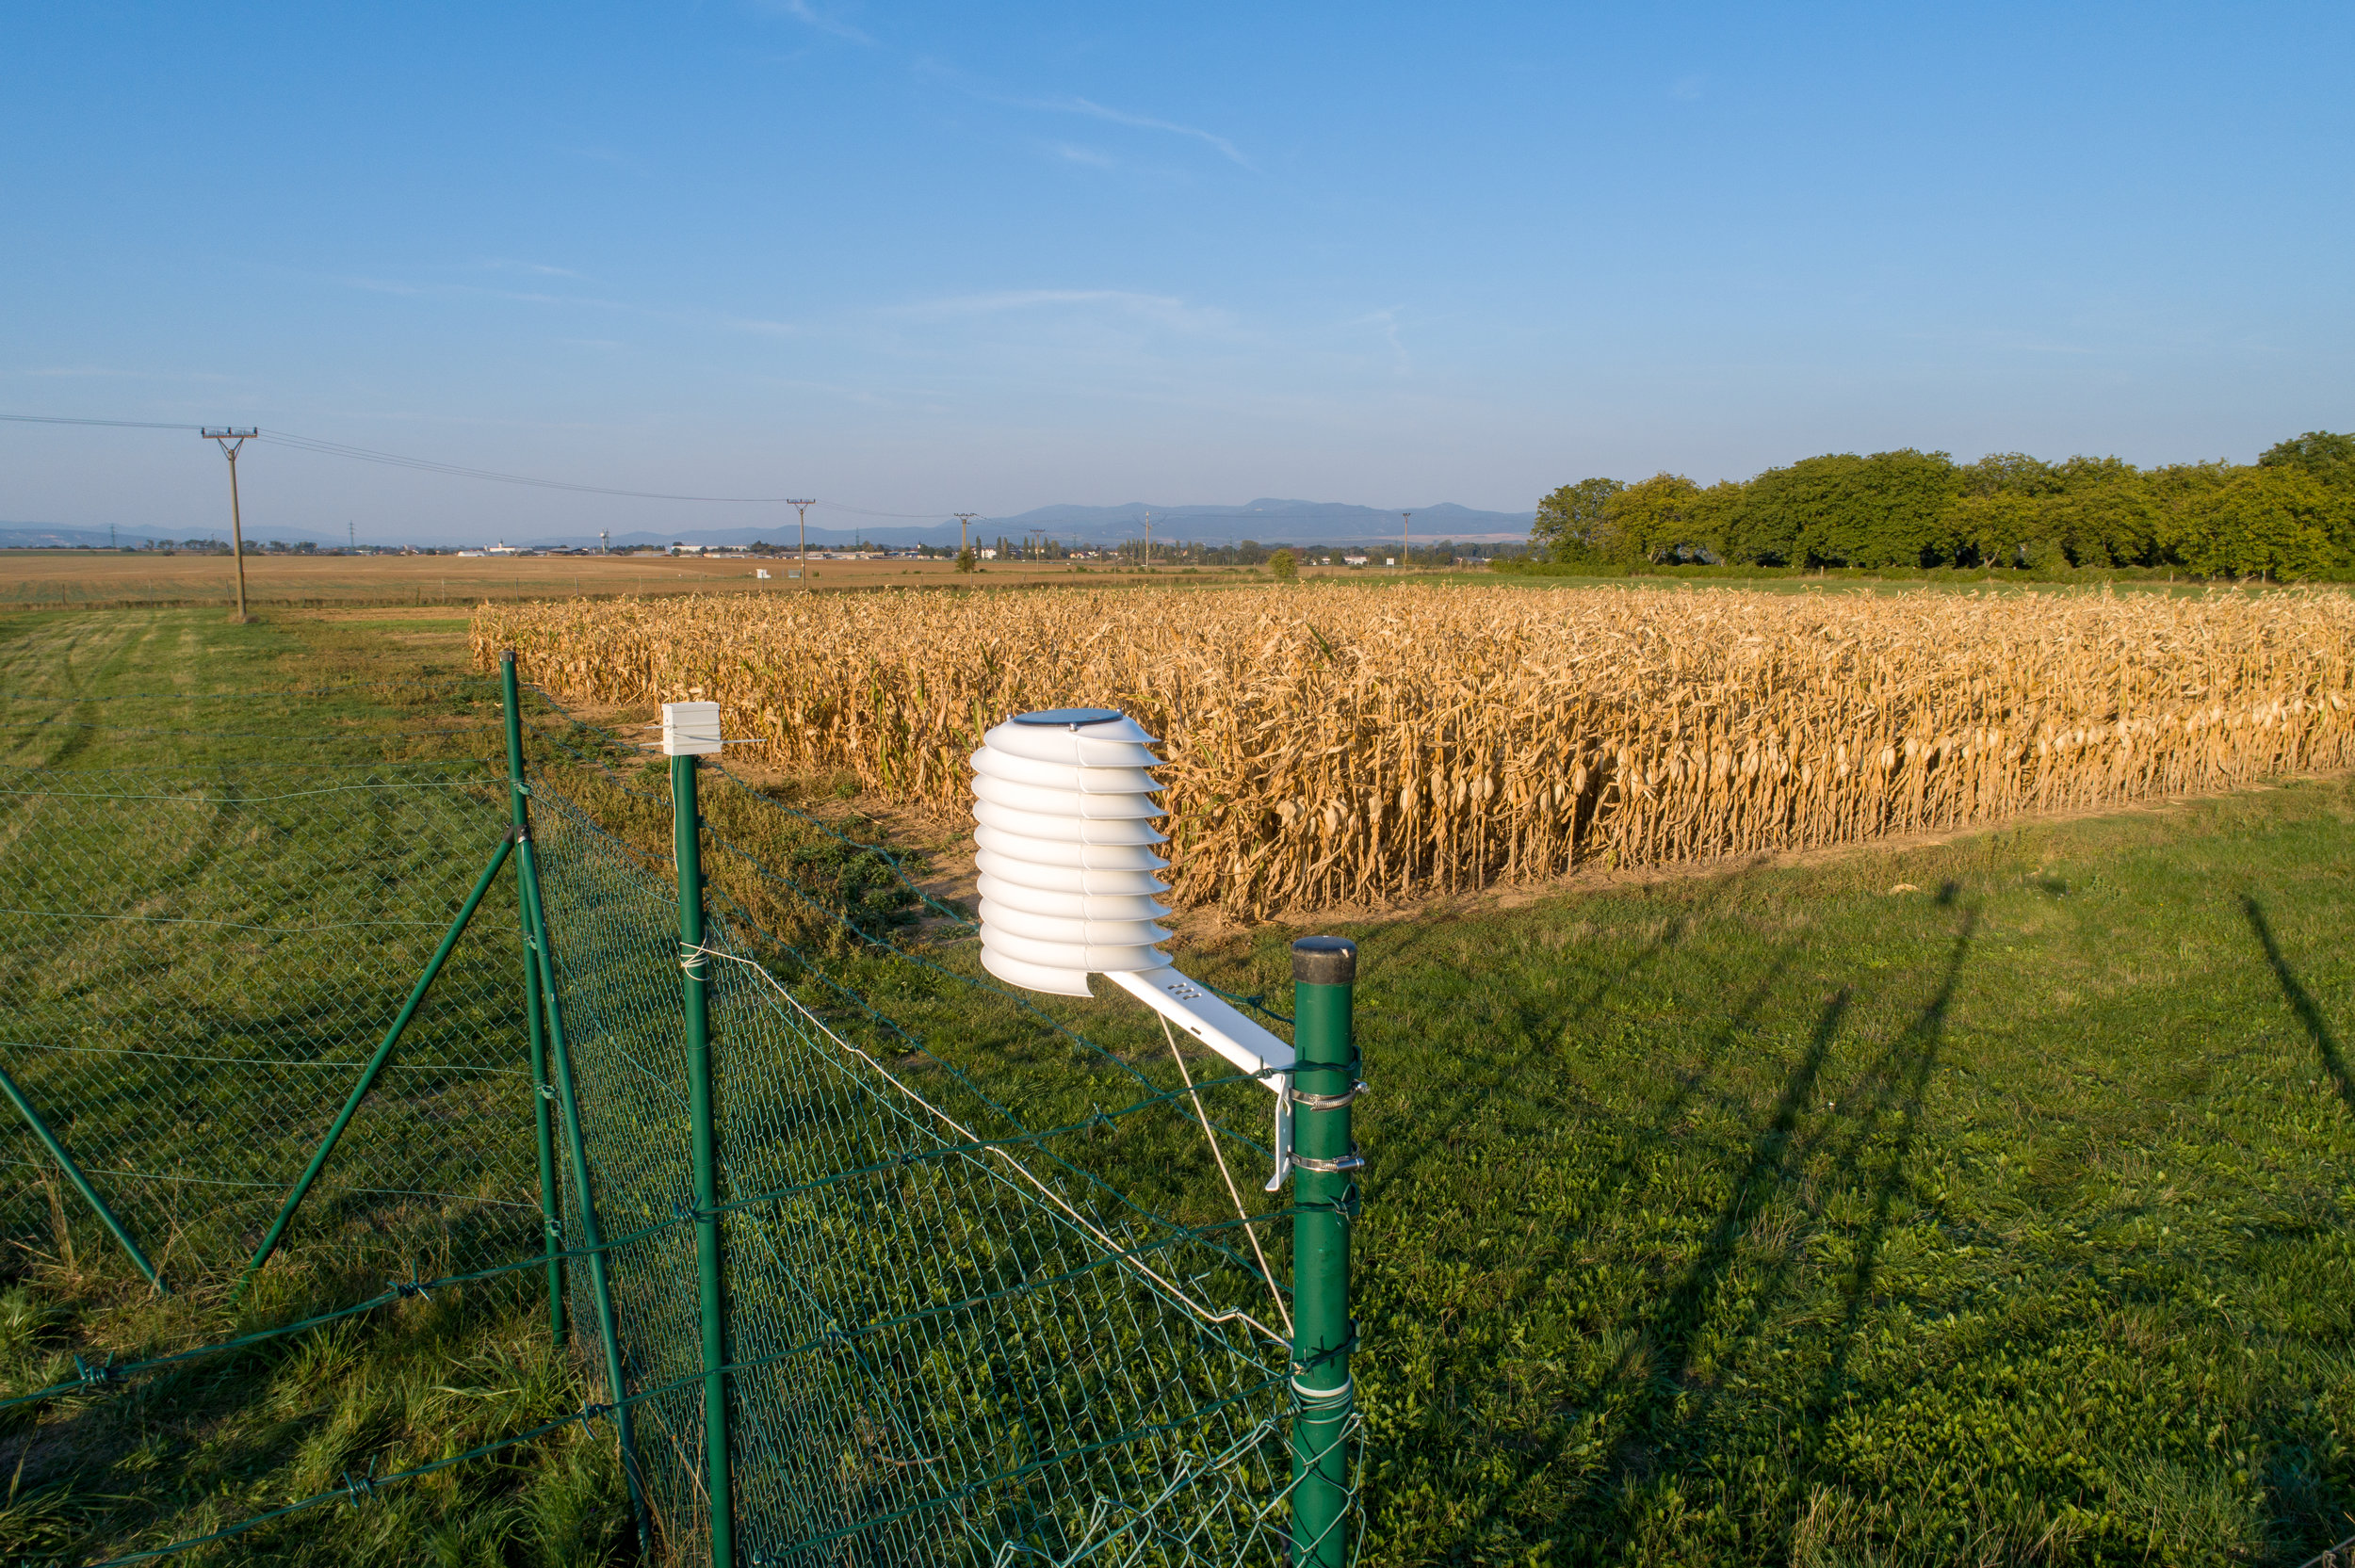 MeteoHelix agricultural weather station overlooking crop field experiments in a vandalism prone area.